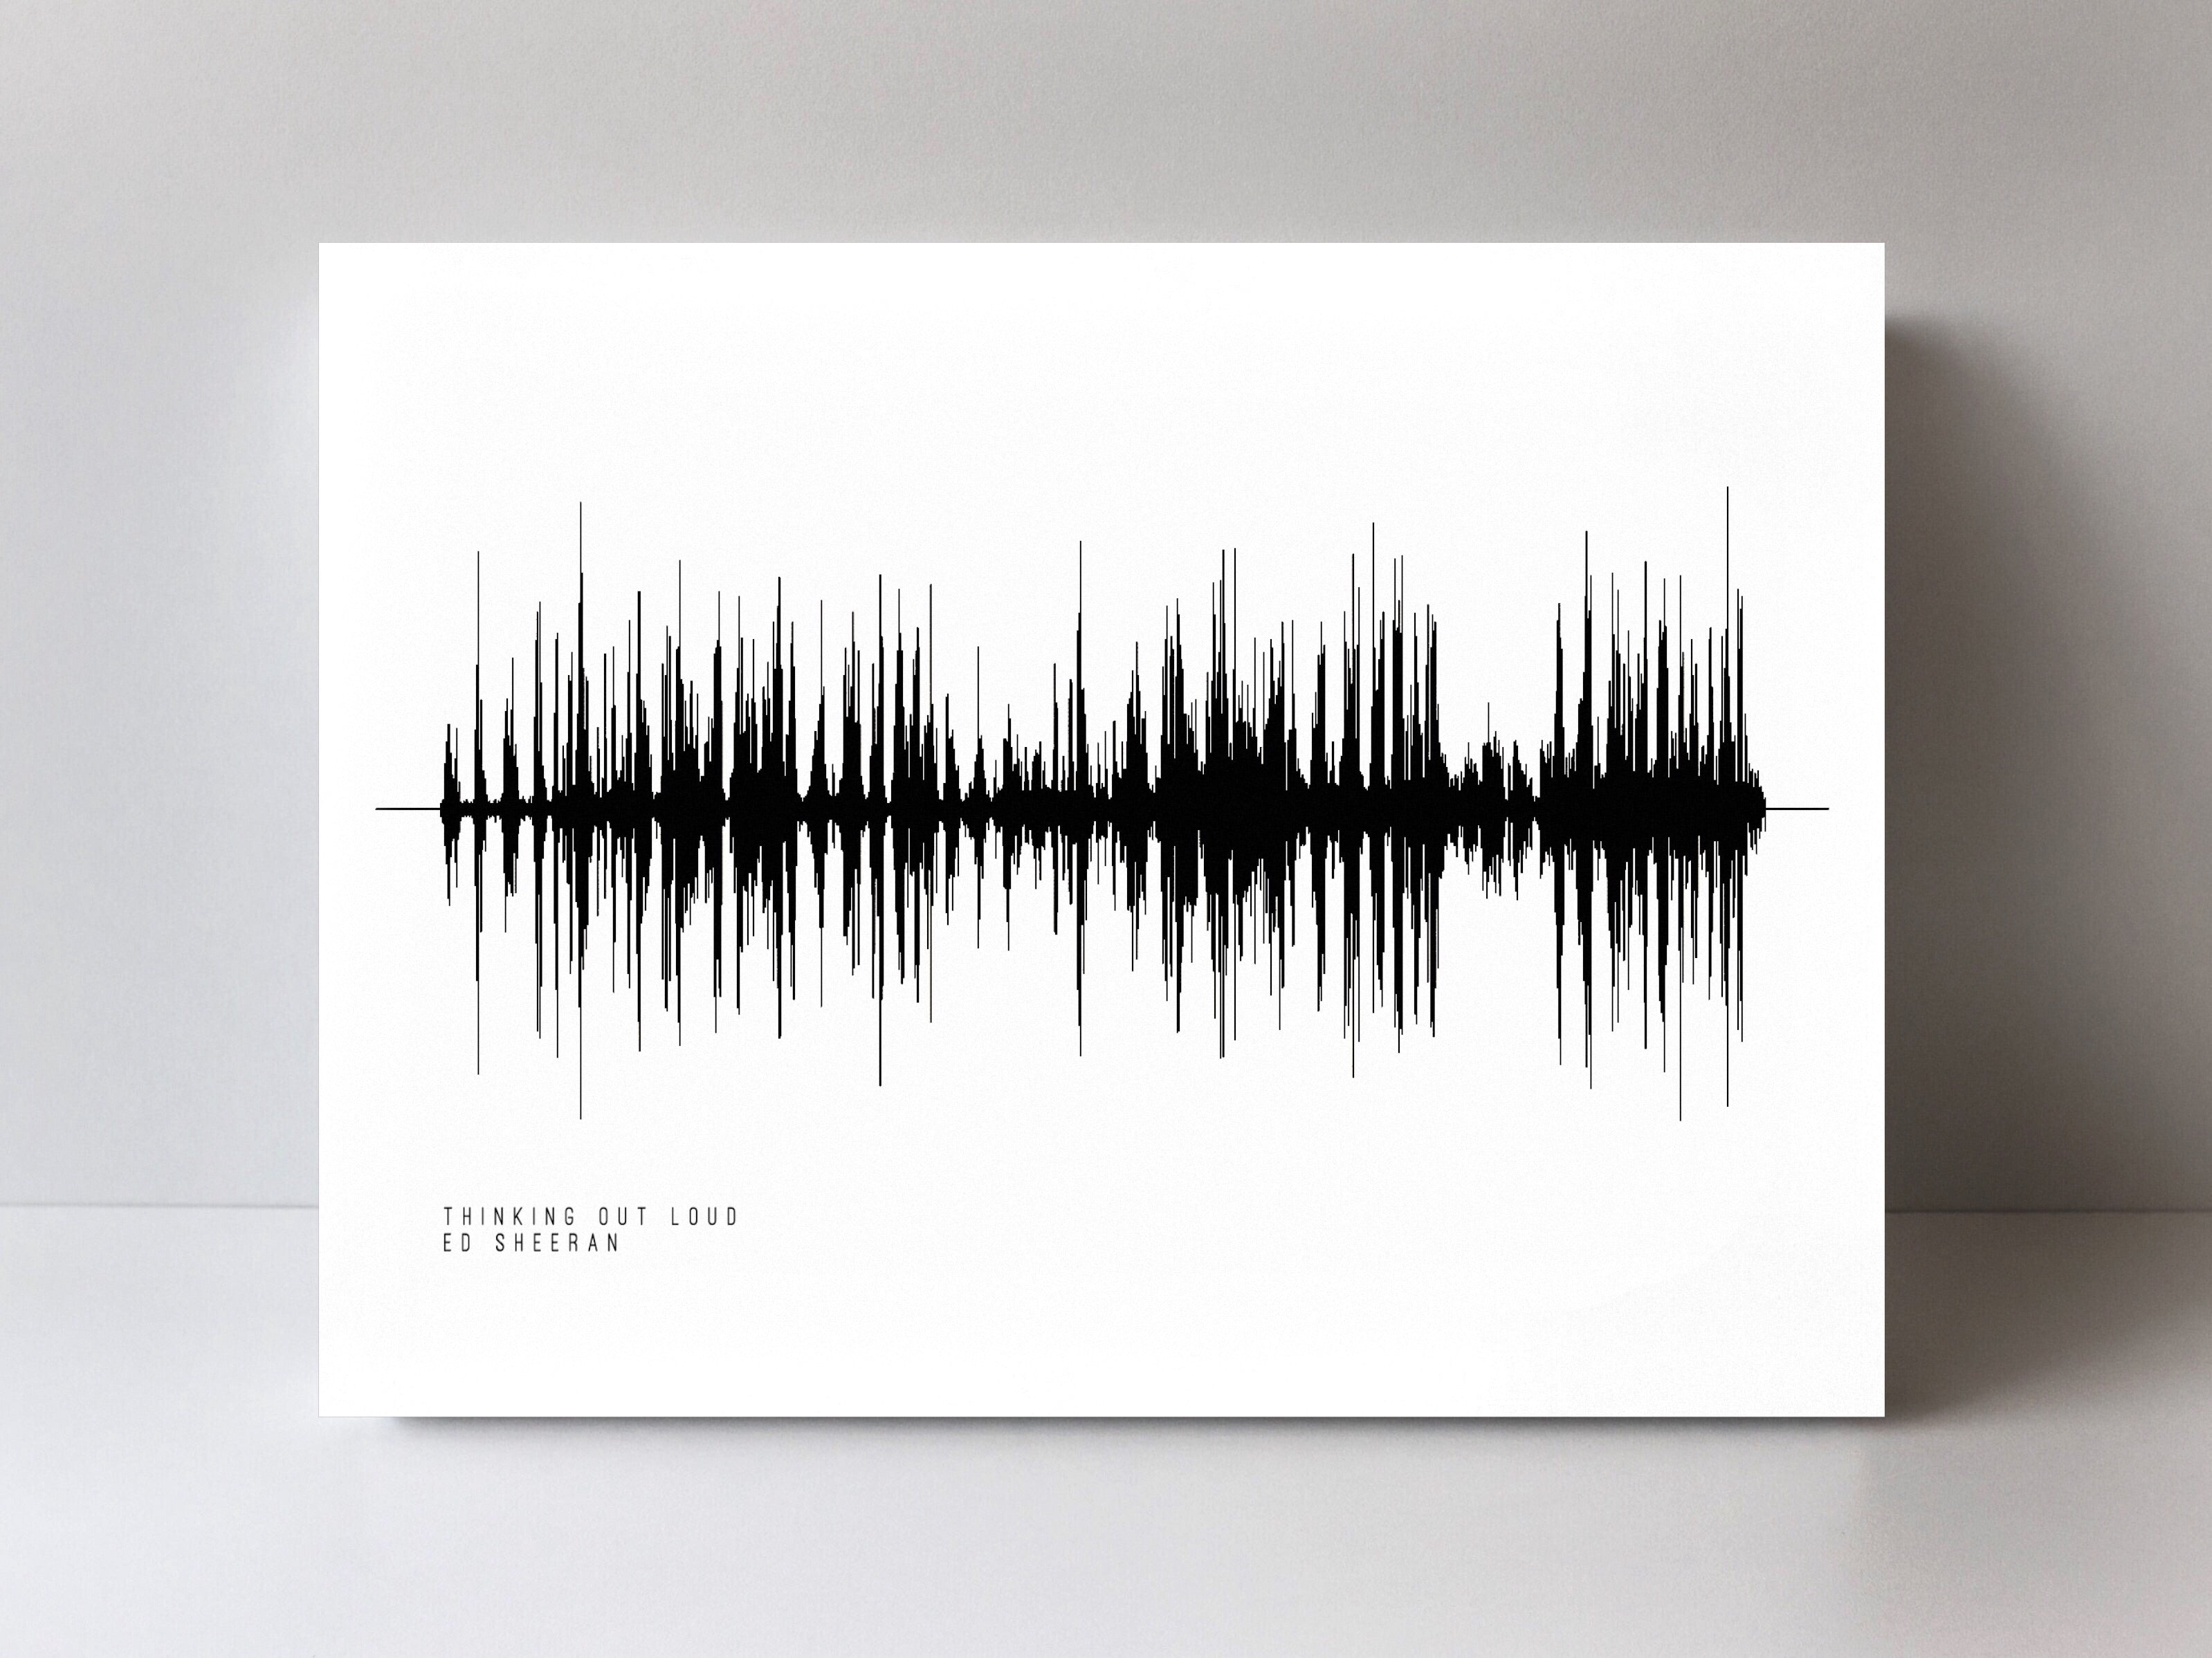 Thinking Out Loud by Ed Sheeran Sound Wave Art Print, Pre-Made Sound ...